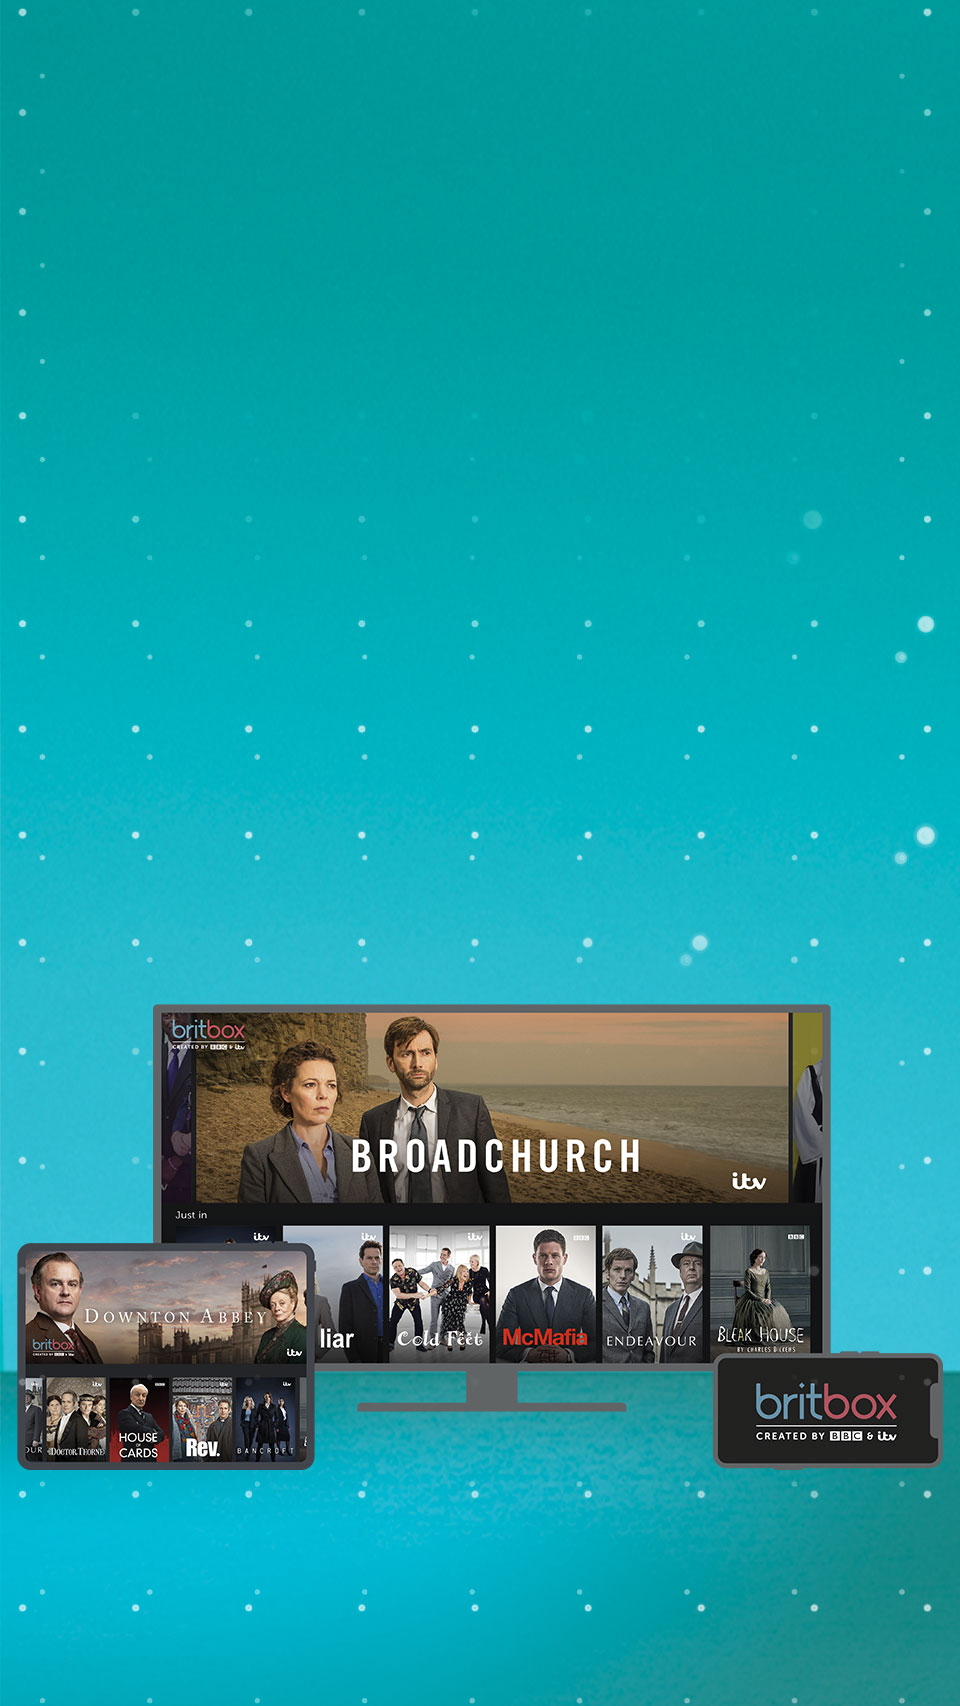 BritBox showing on a tablet, TV and mobile device